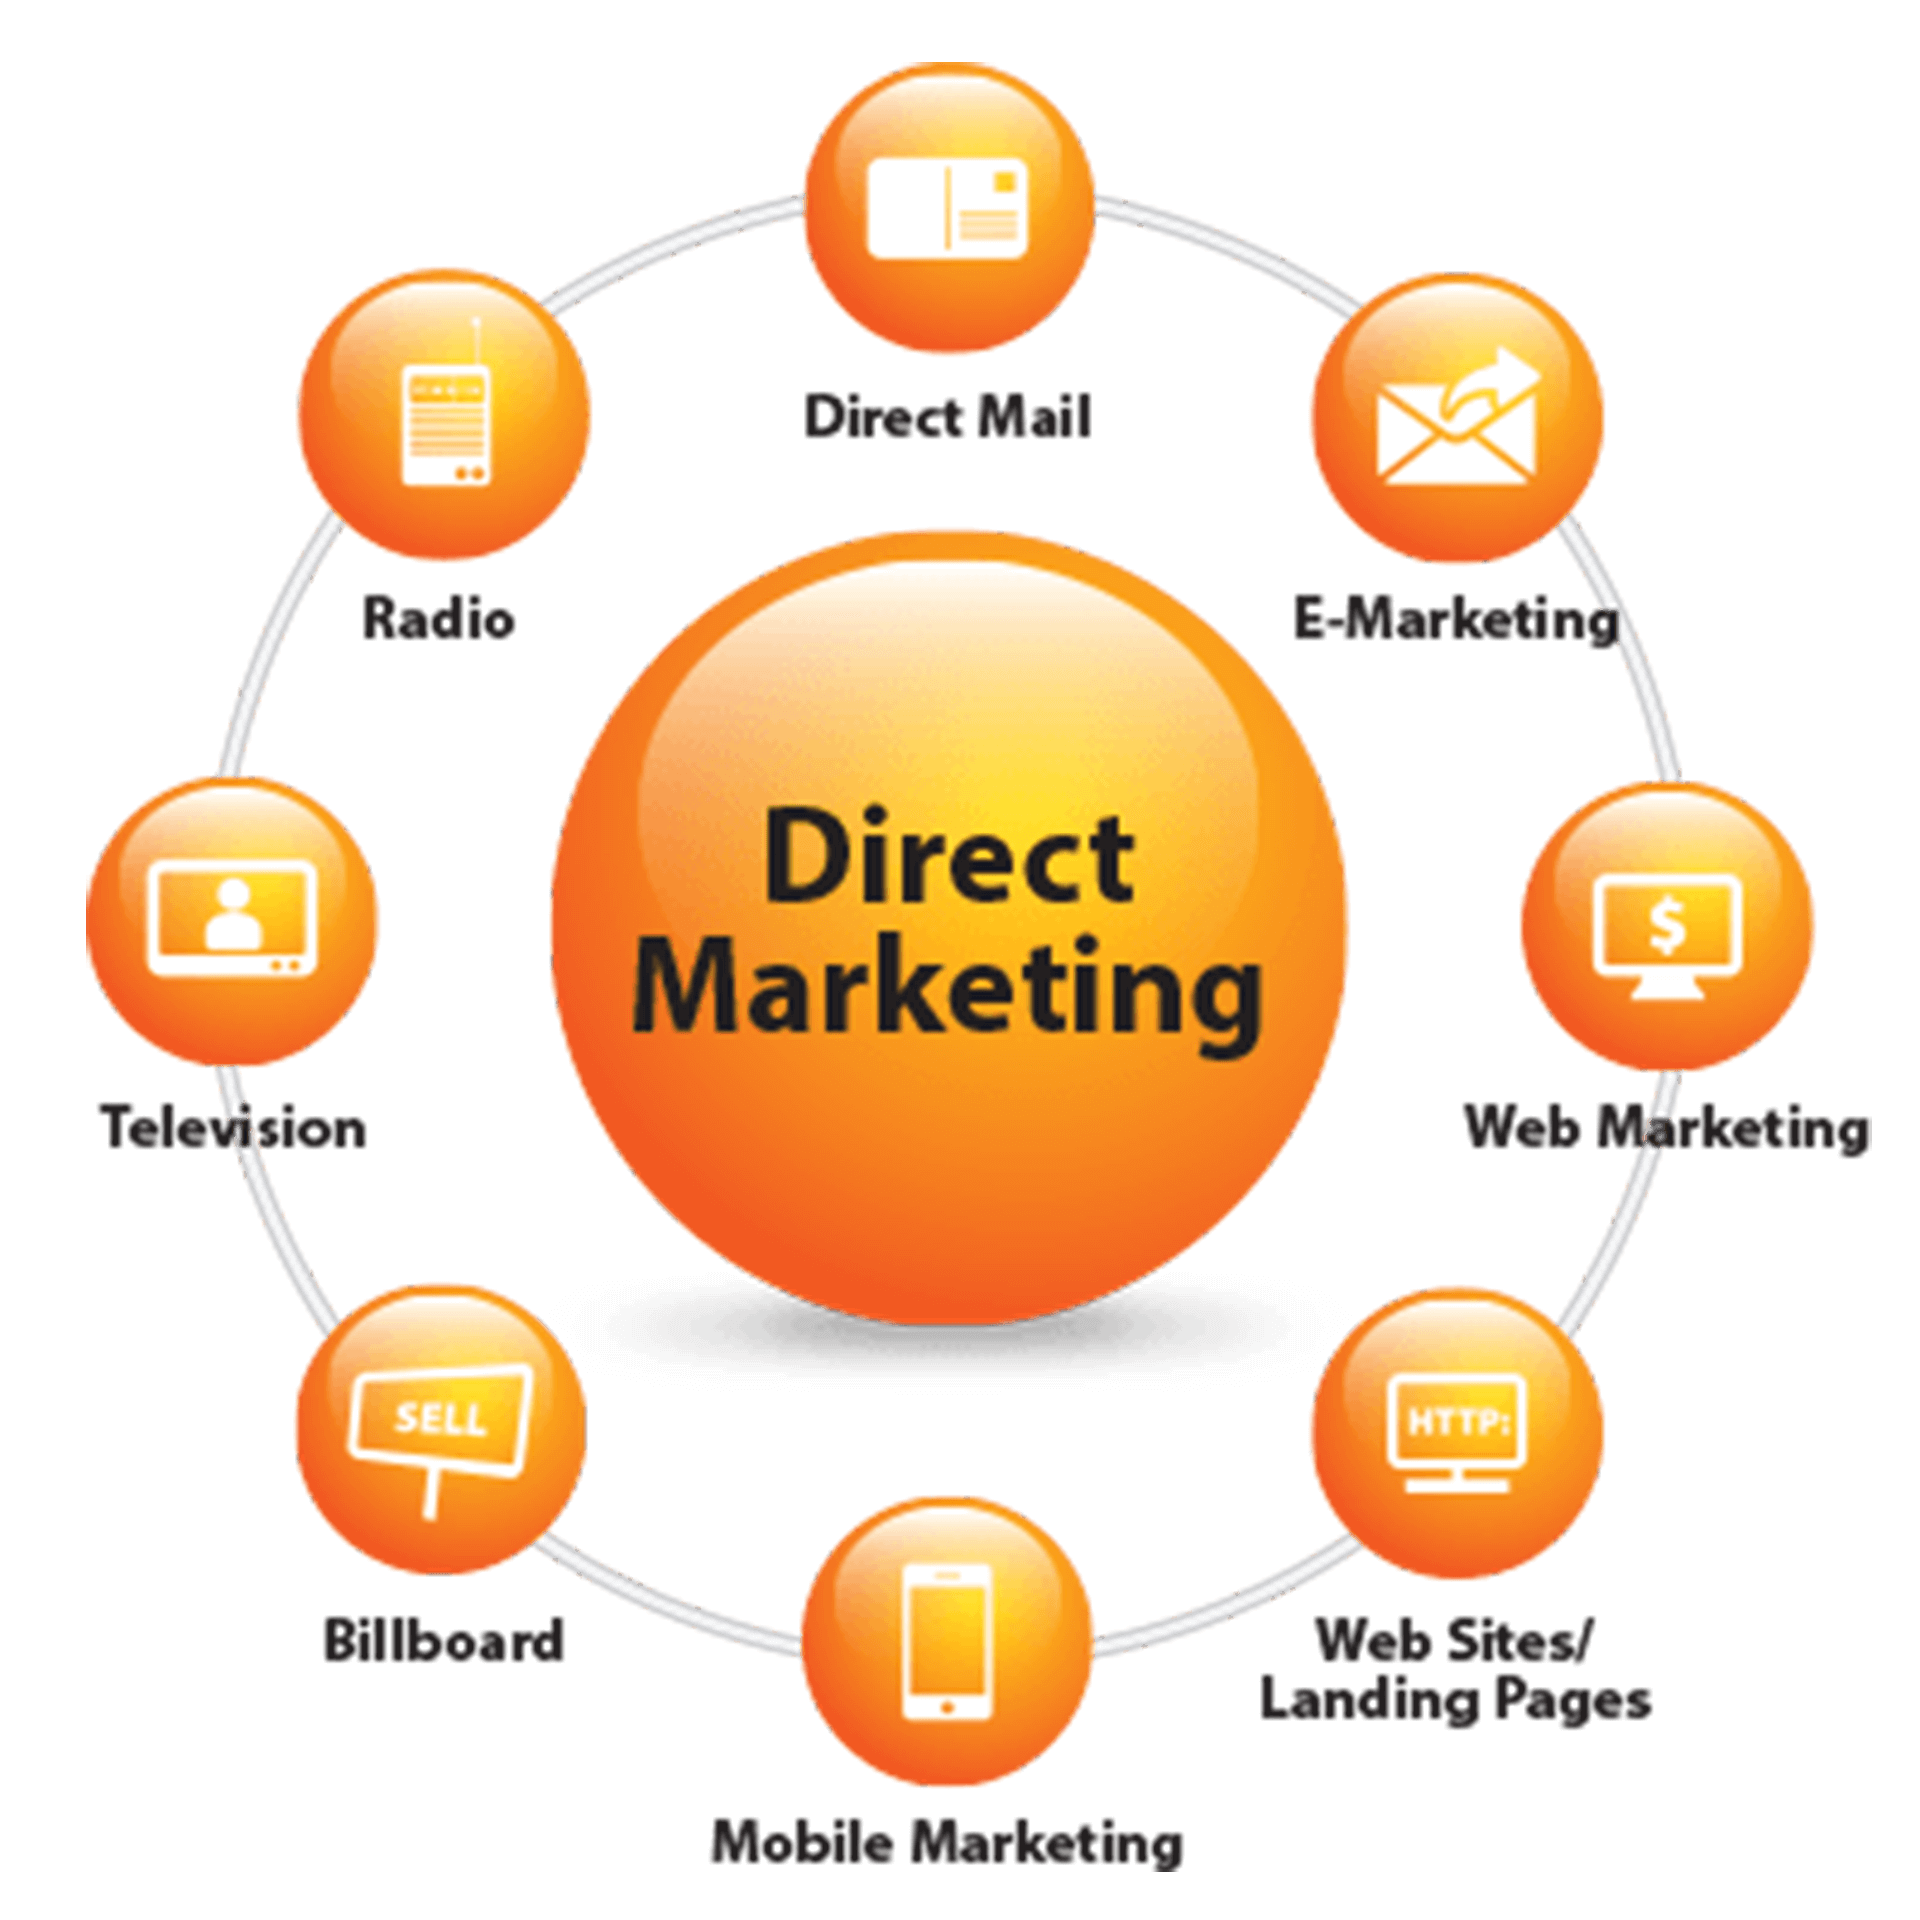 definition of direct marketing ico